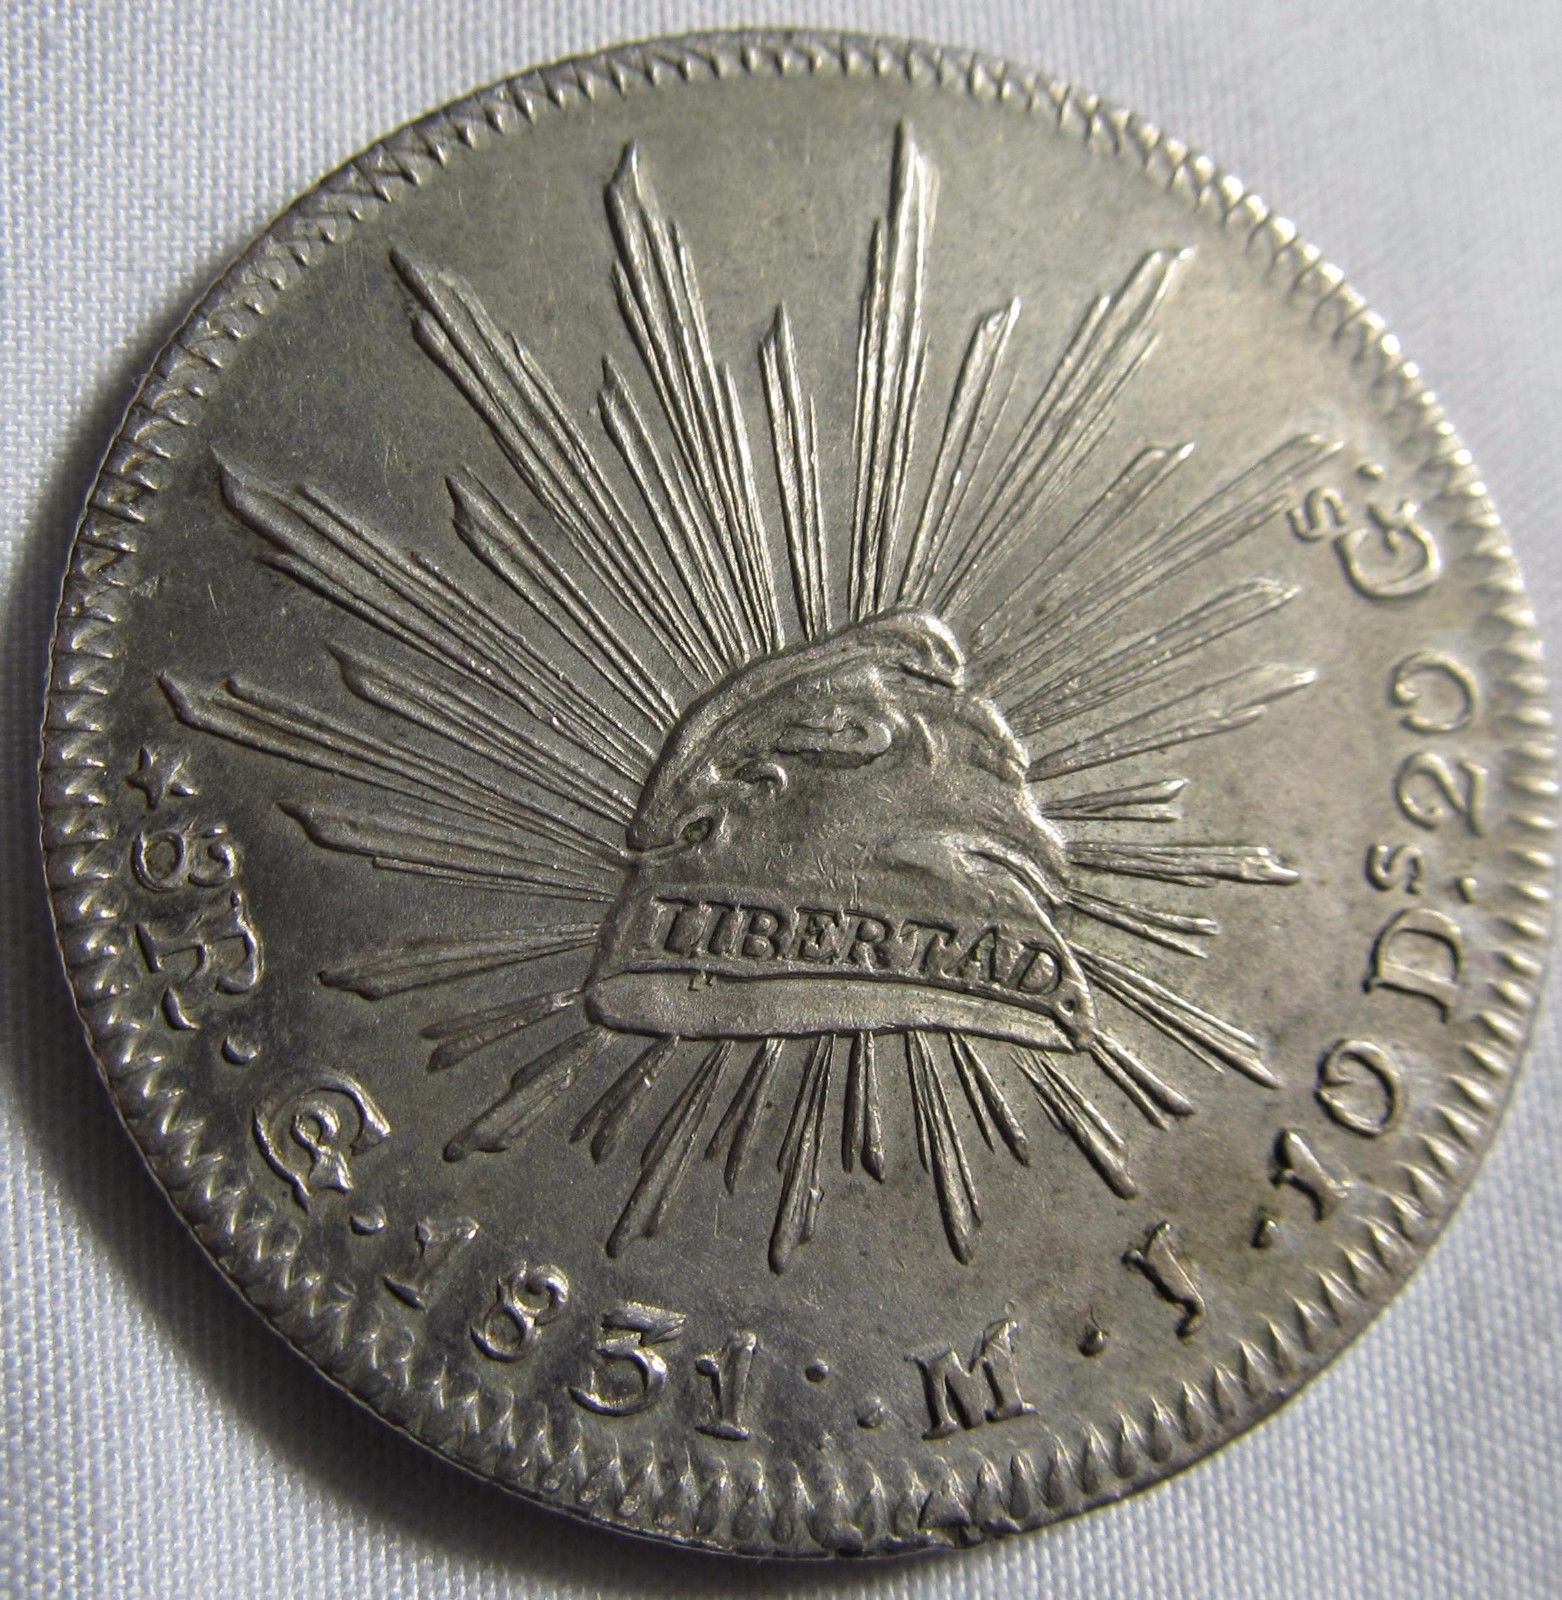 Mexico 1831 Go MJ Silver 8 Reales Lustrous XF-AU https://t.co/0slzLi8FZj https://t.co/GEN4oZEPoe